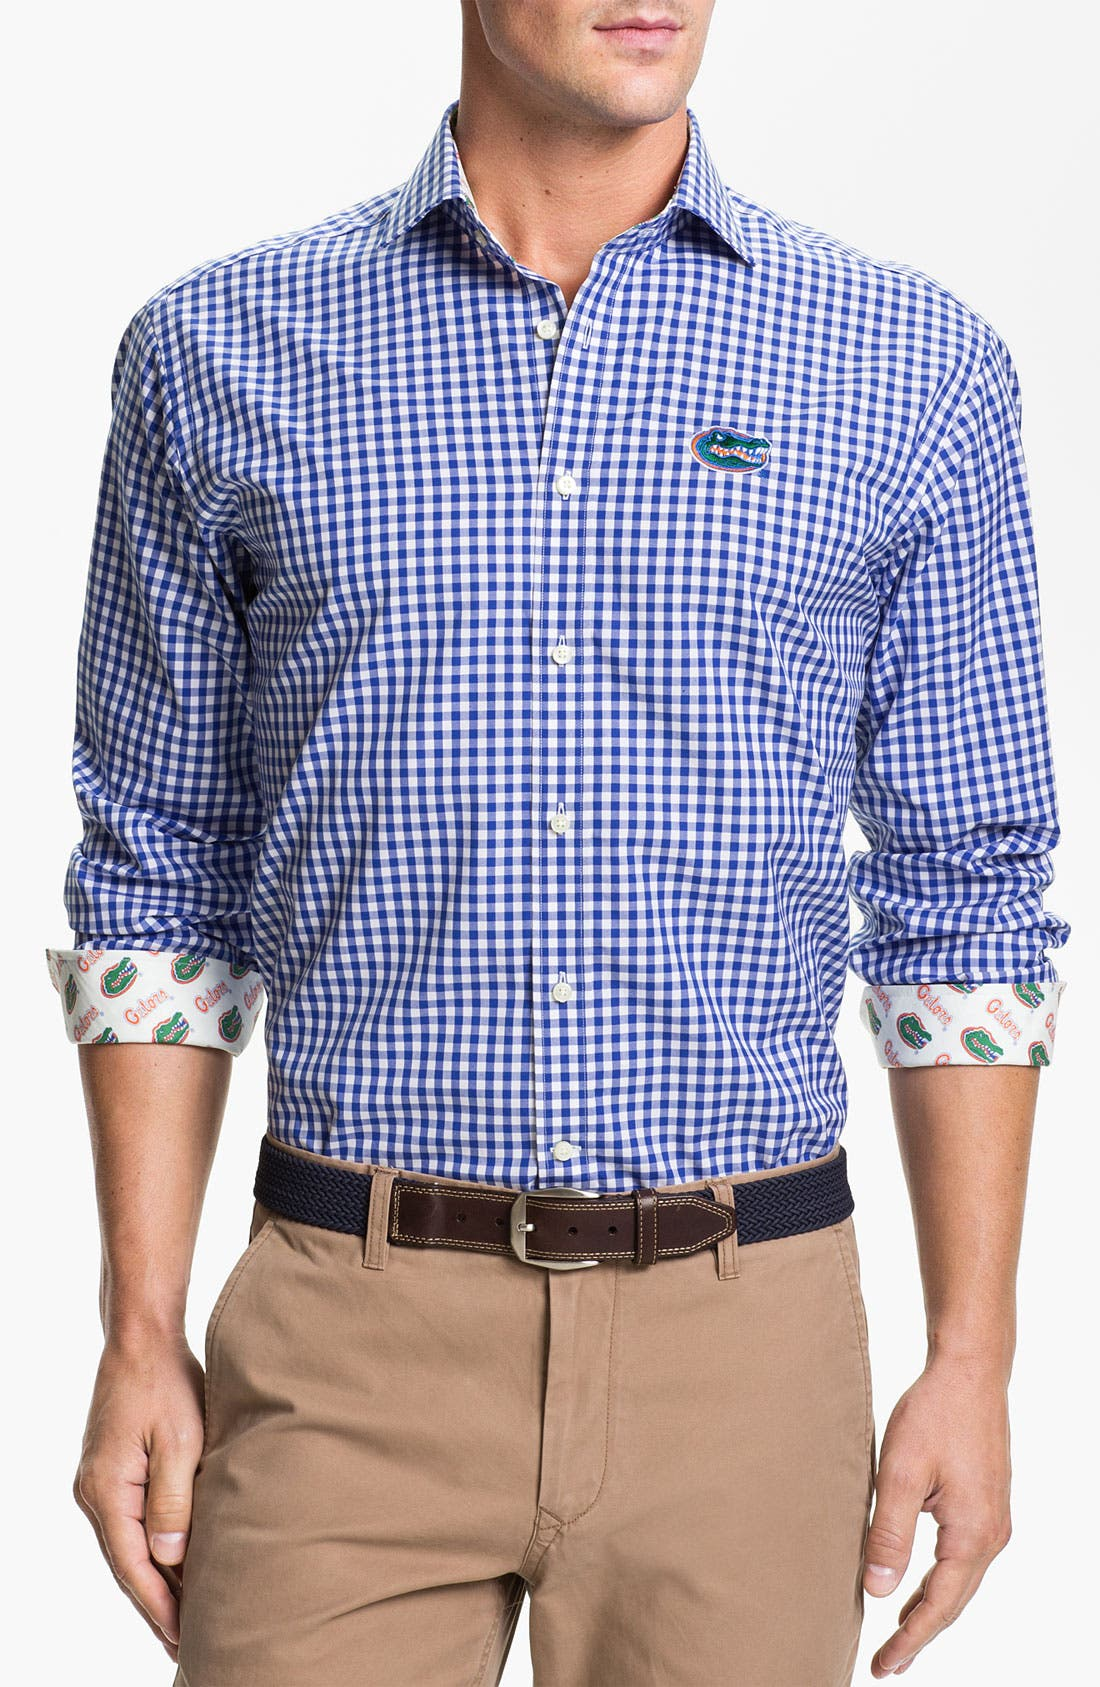 Alternate Image 1 Selected - Thomas Dean 'University of Florida' Gingham Sport Shirt (Online Only)